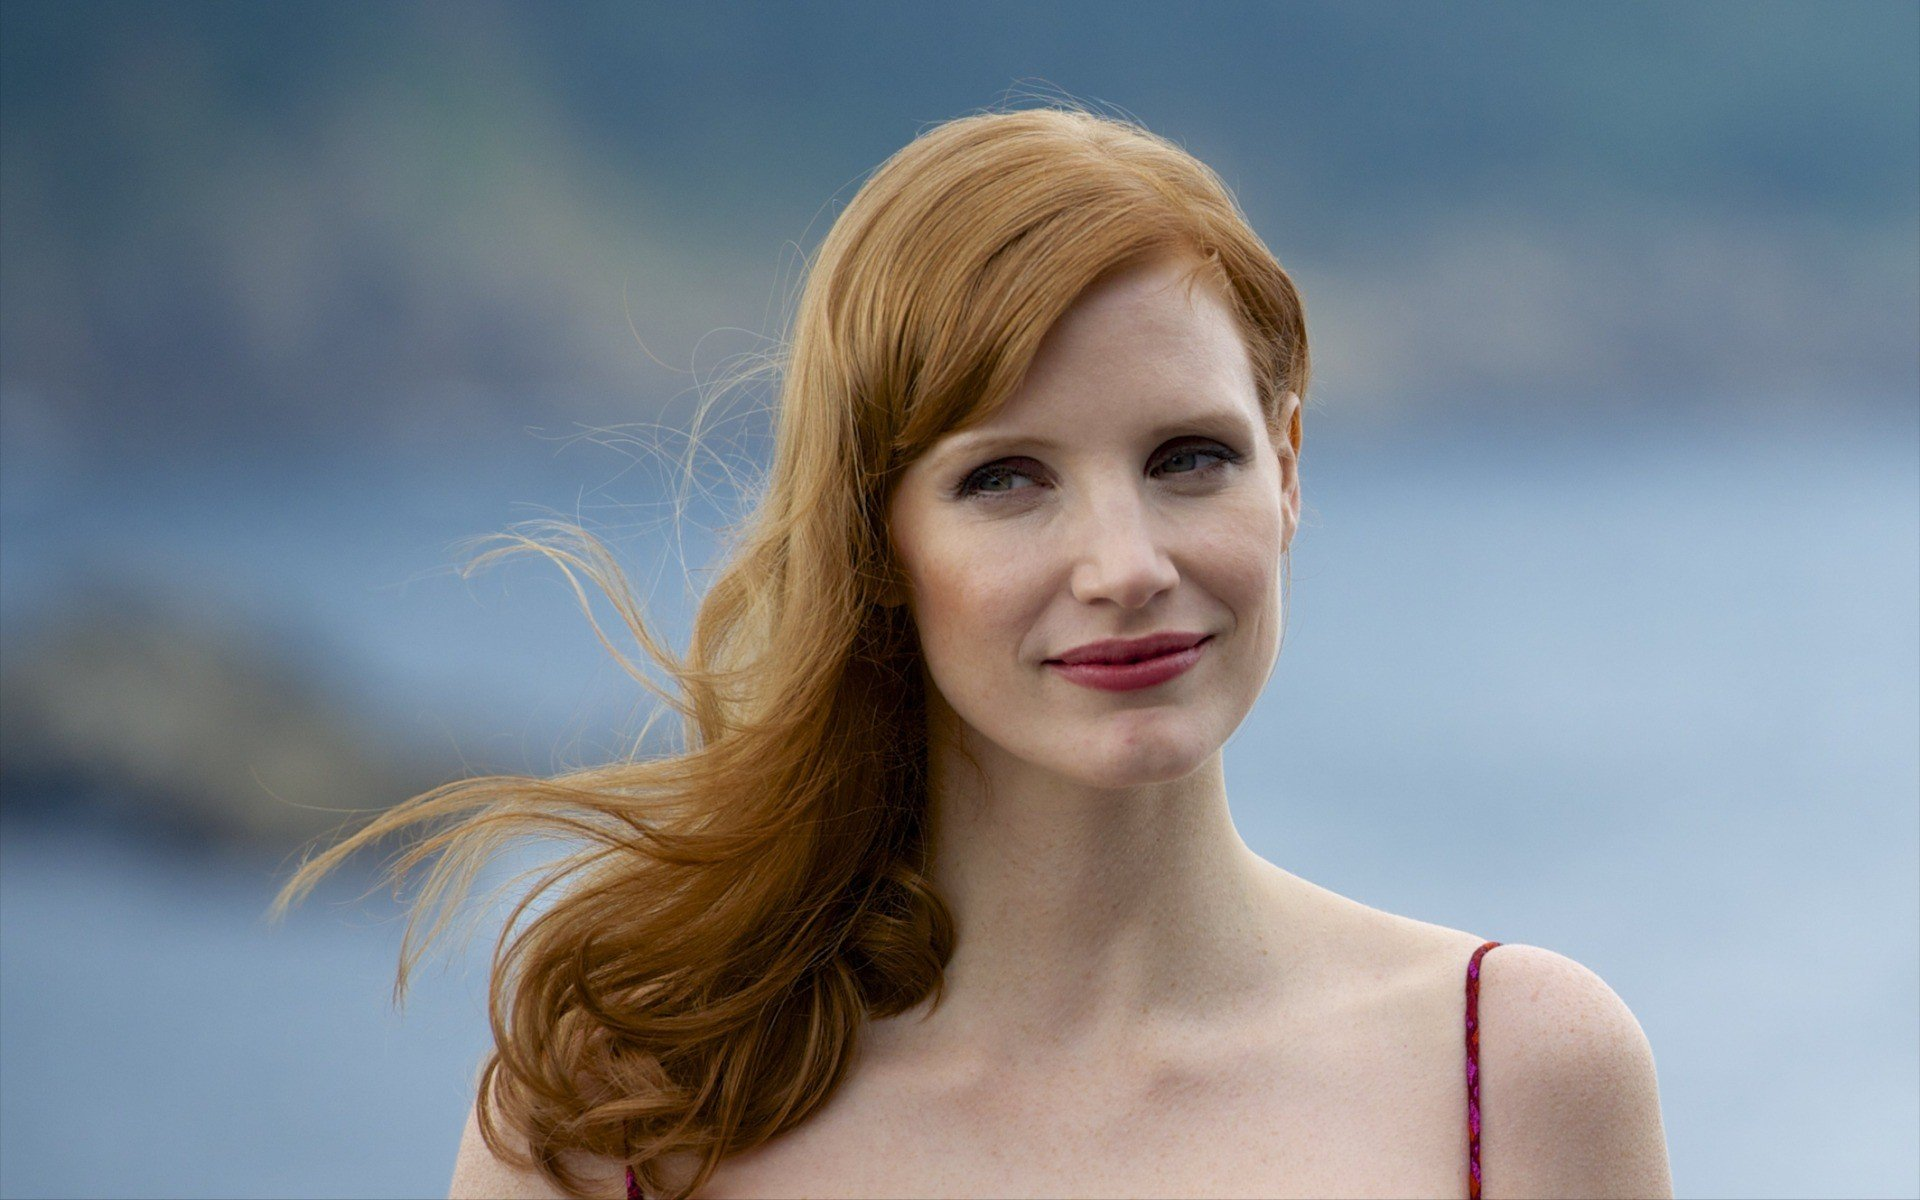 Actress Wallpaper For Mobile 26: Jessica Chastain, Women, Redhead, Actress, Face HD